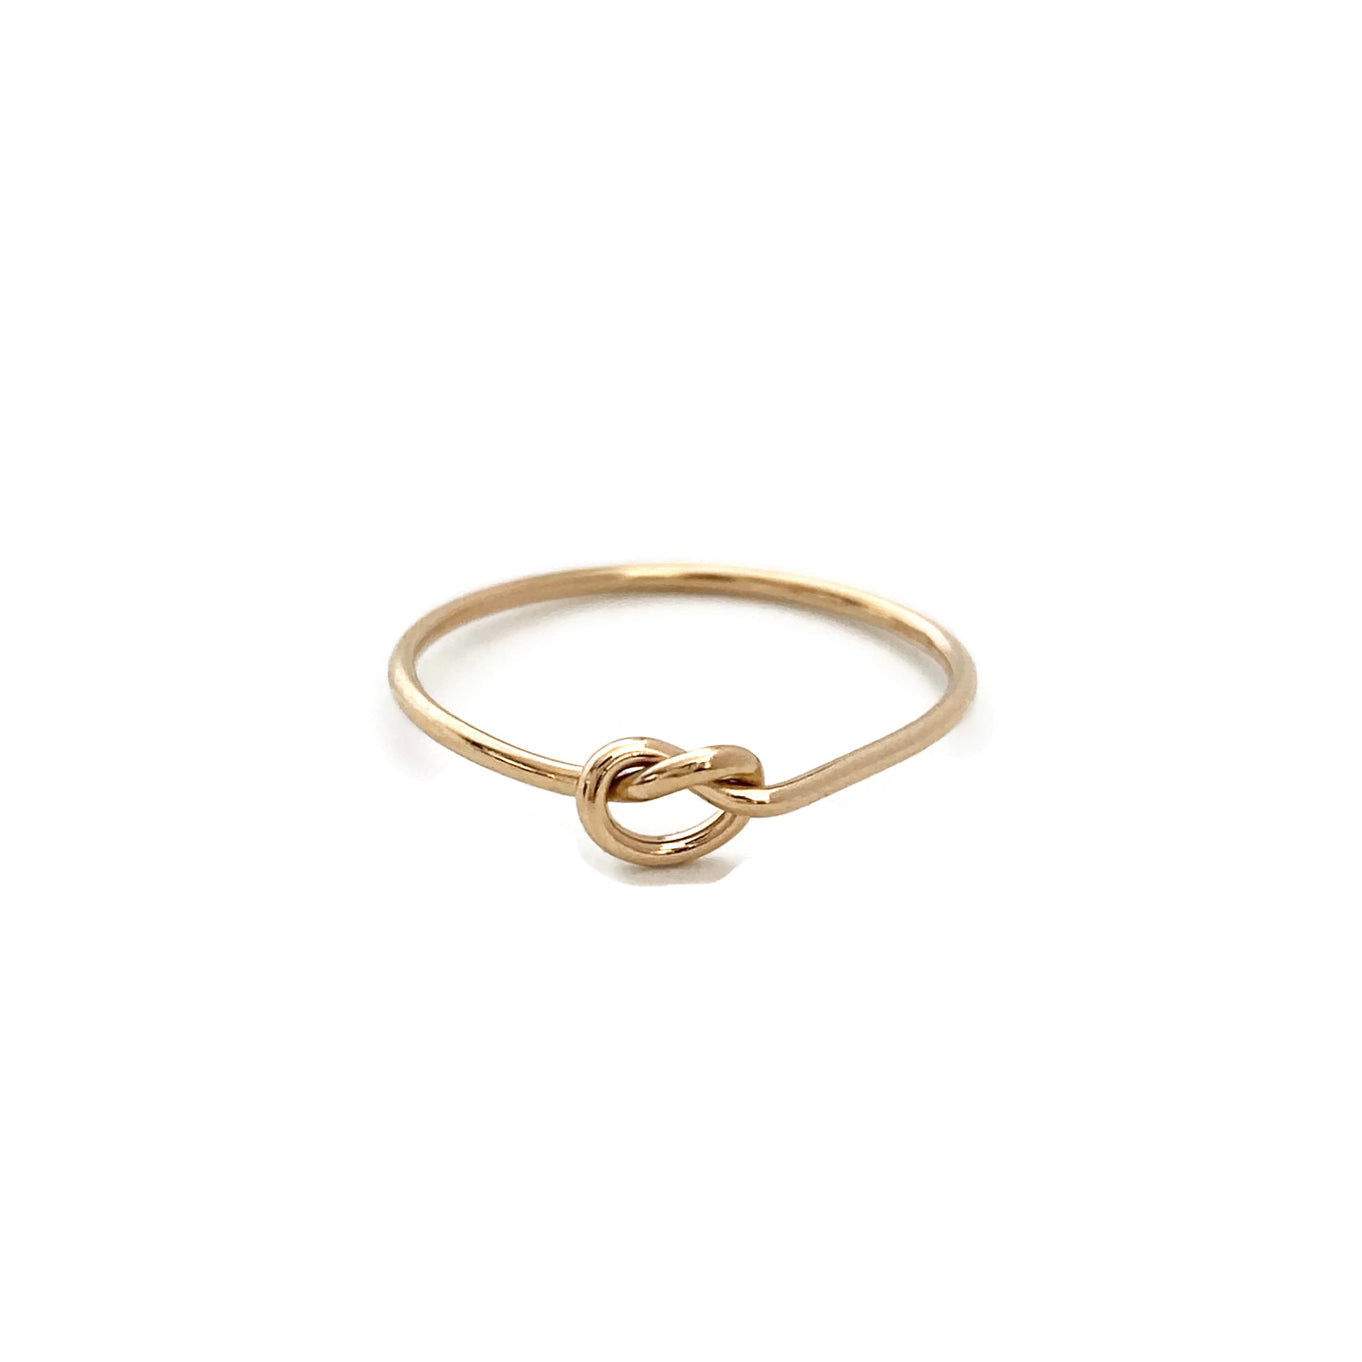 This dainty love knot ring is a cute ring that you can wear it for everyday.